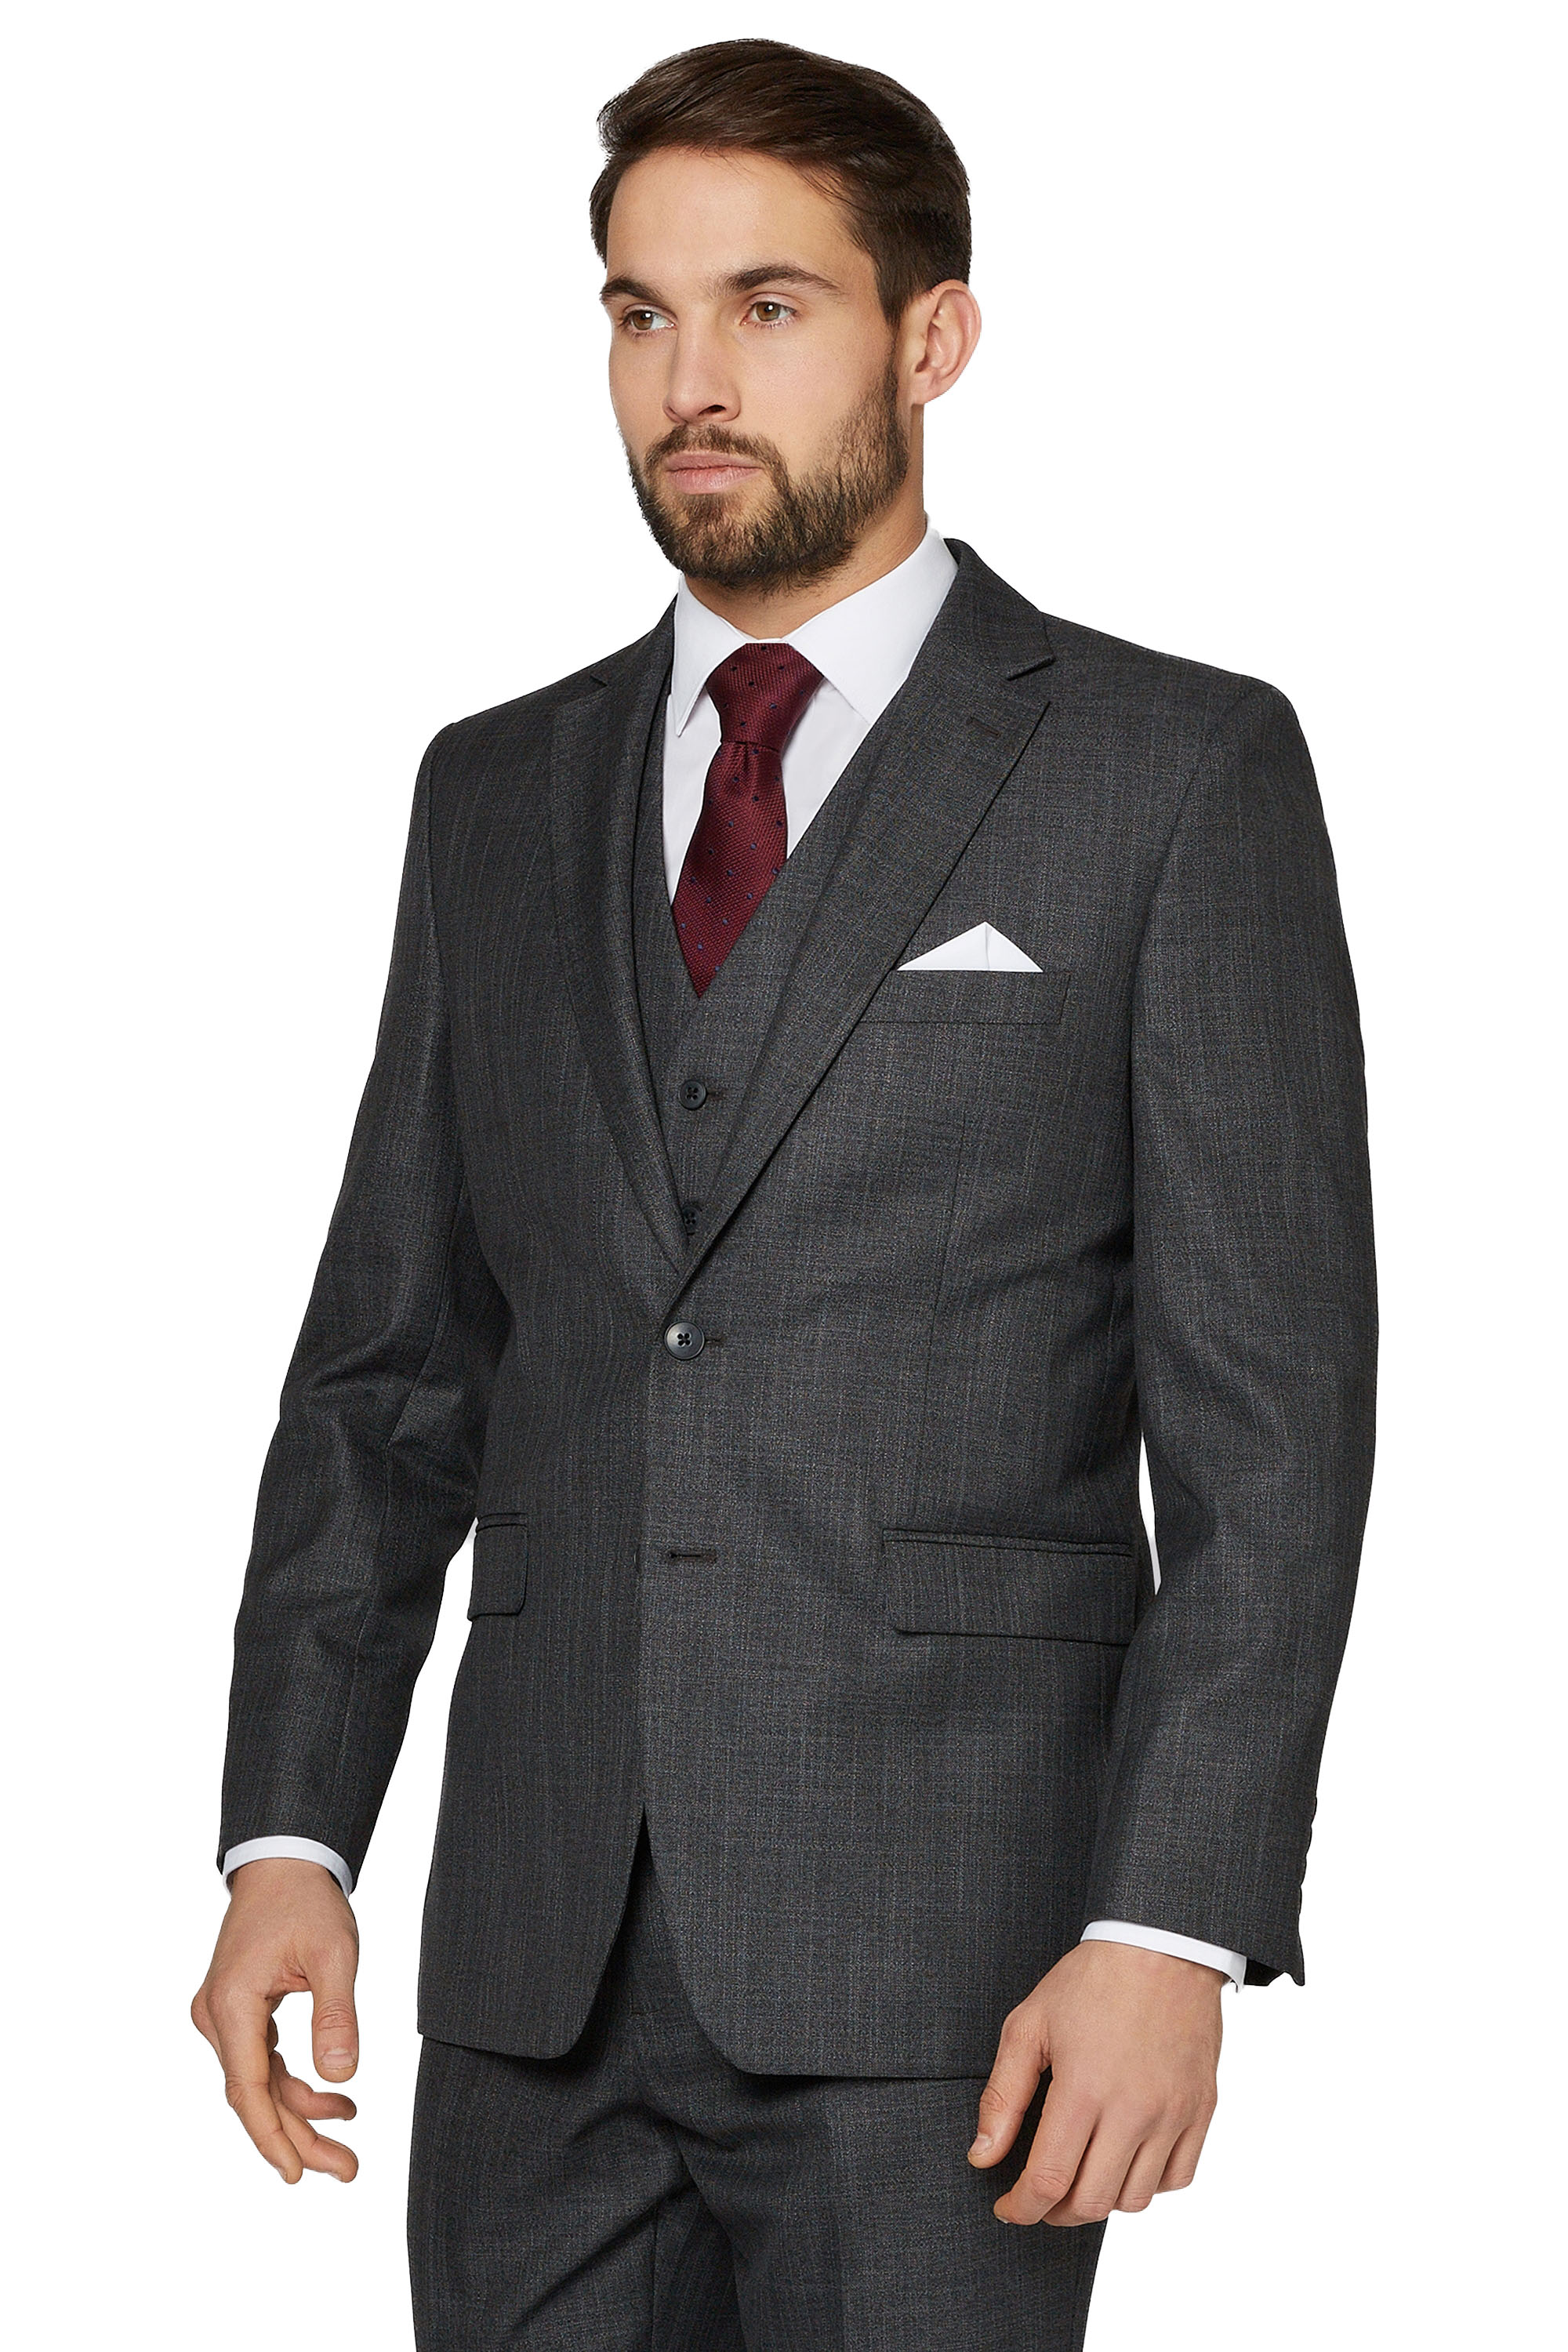 Moss Esq. Mens Suit Jacket Regular Fit Charcoal Grey Sharkskin Two ...